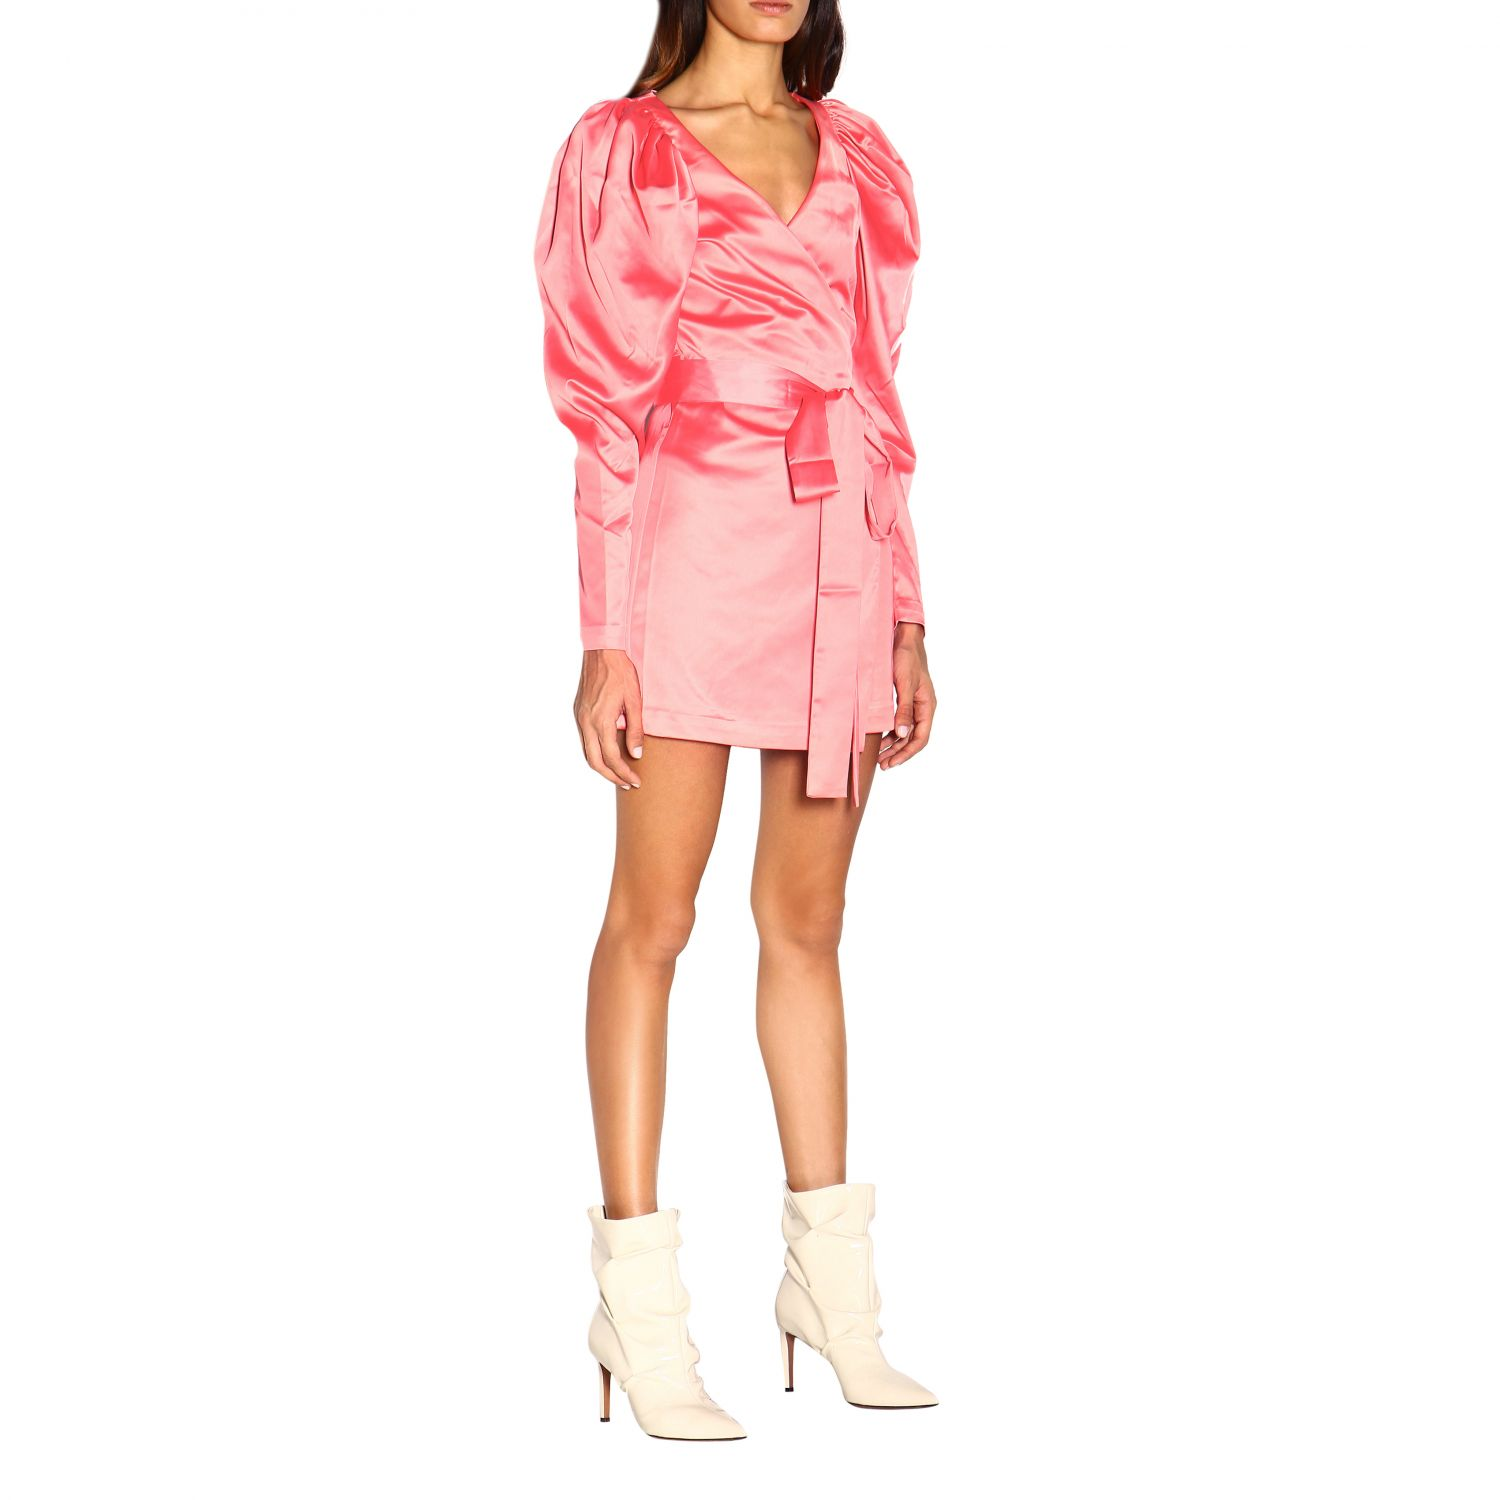 Robes femme Rotate rose 1